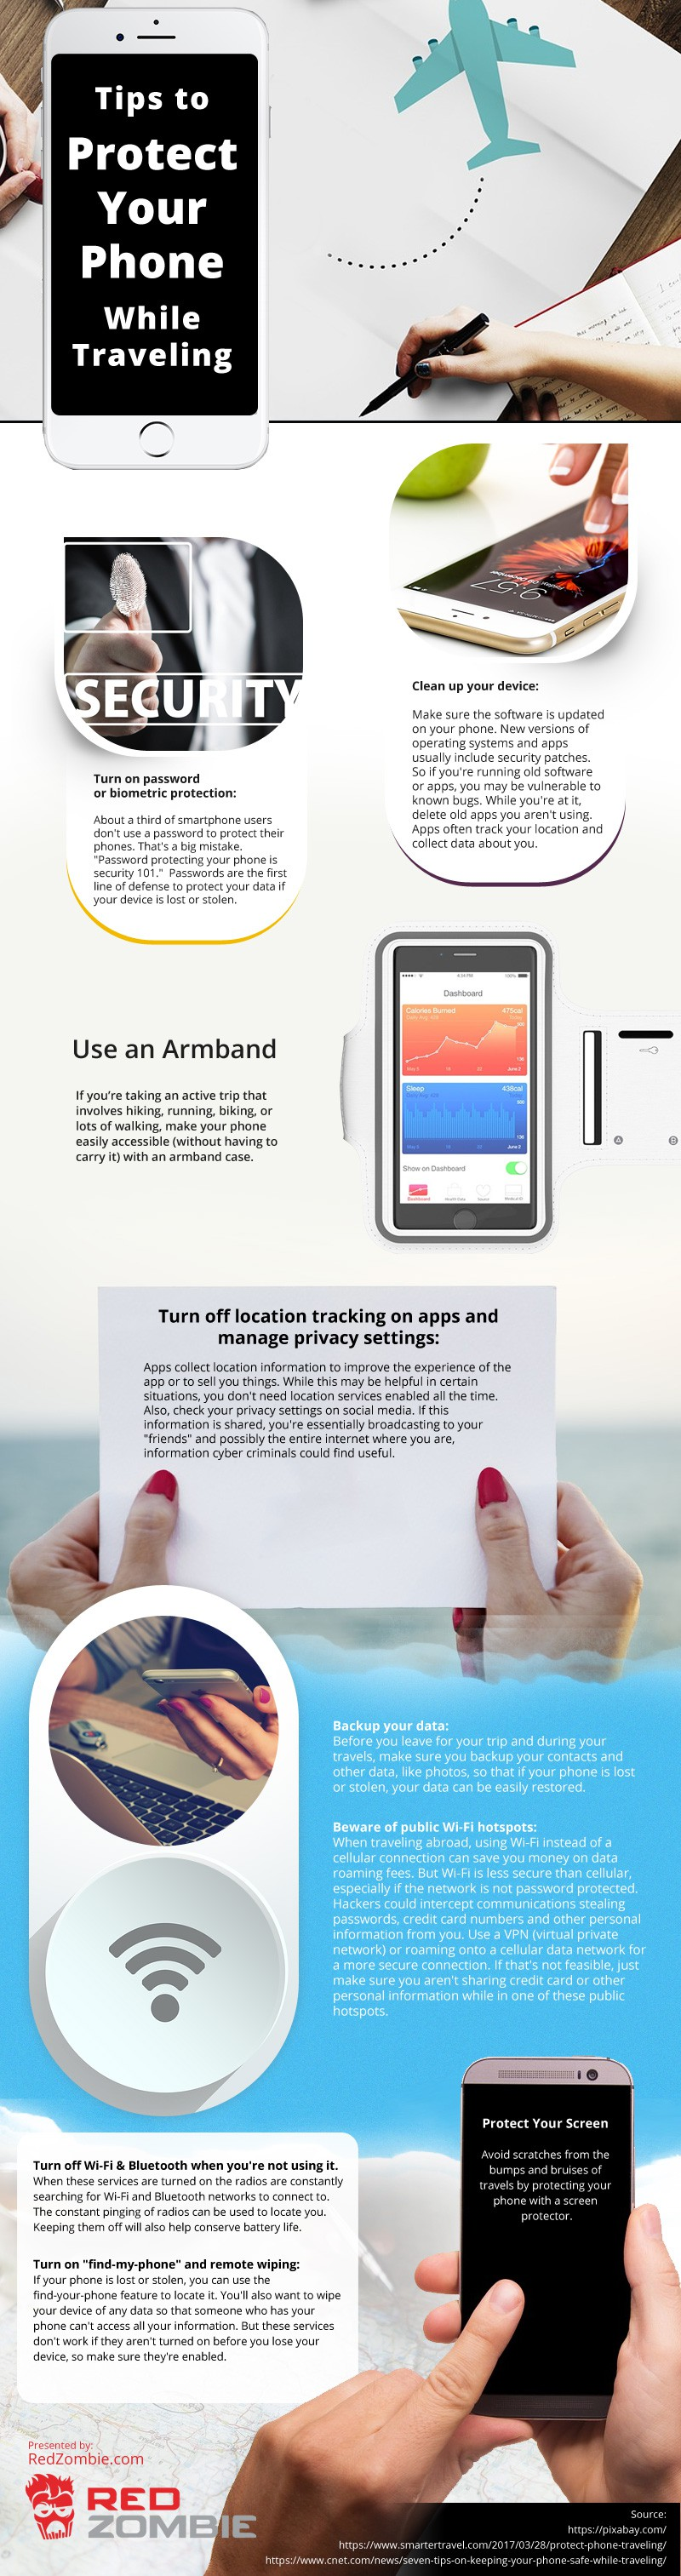 Tips-to-Protect-Your-Phone-While-Traveling Infographic